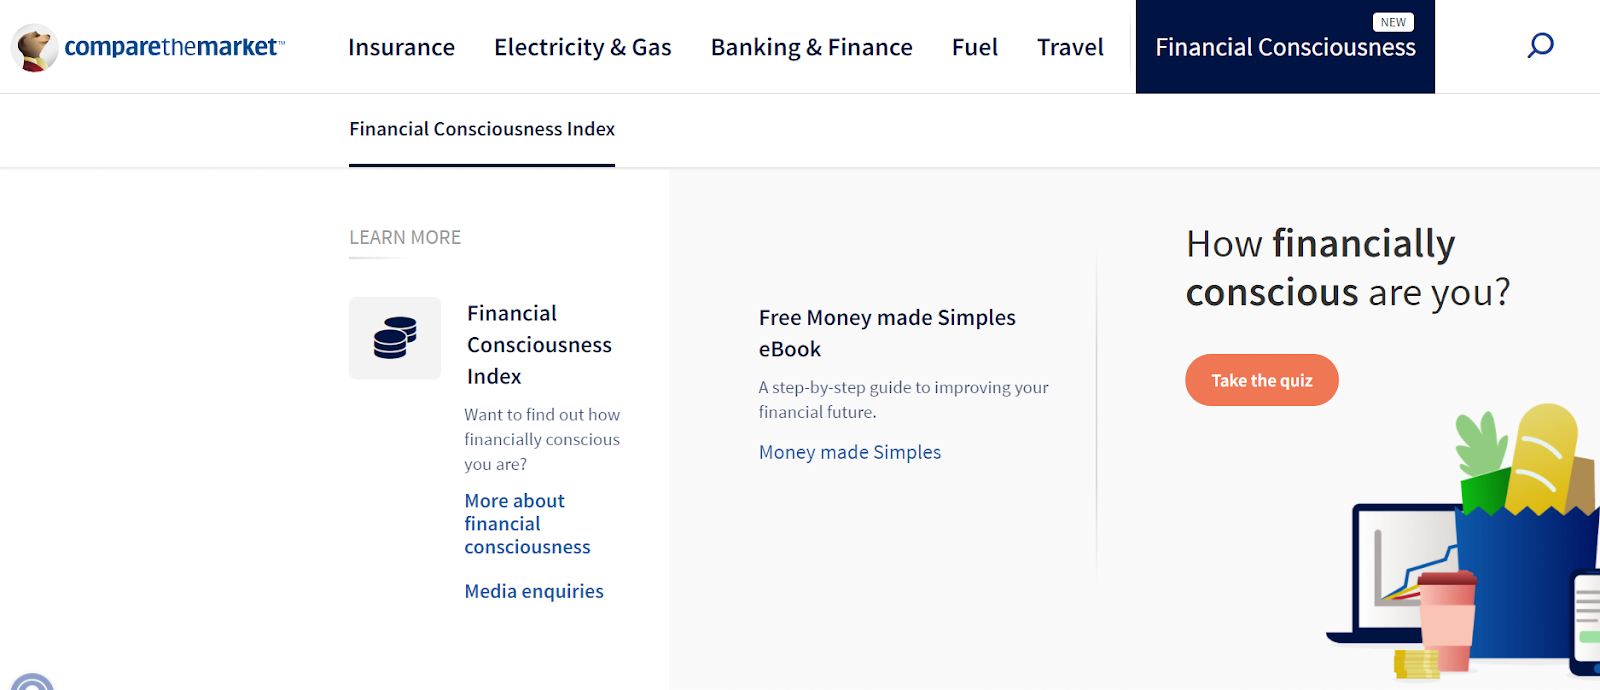 header with how financially conscious are you? and a button to the quiz